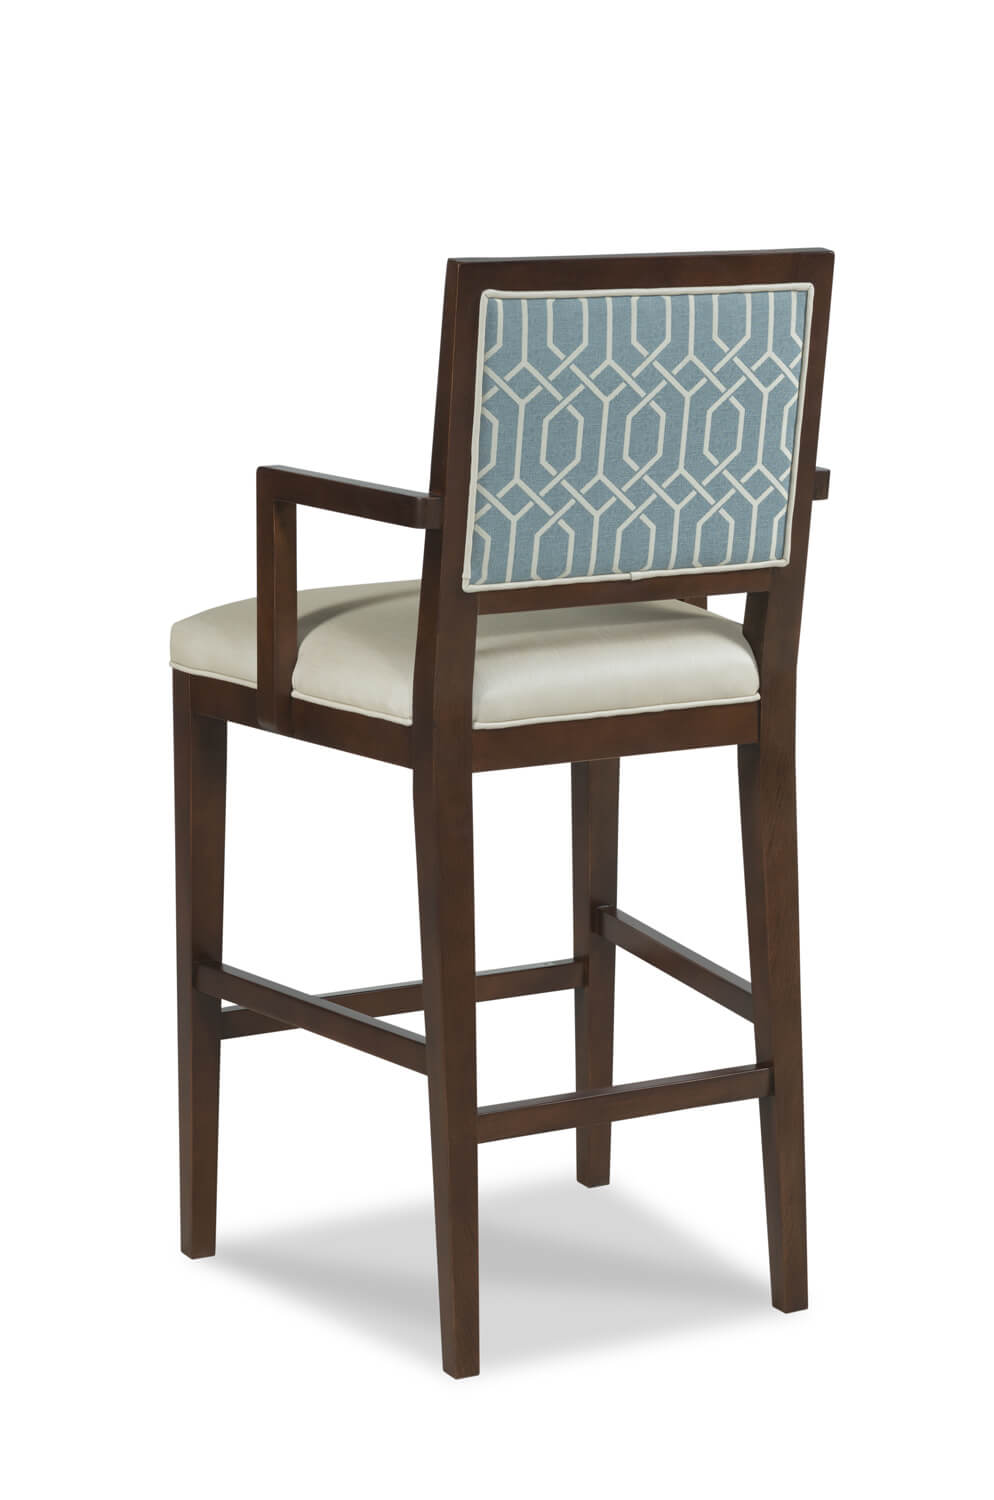 Prime Potter Upholstered Wooden Stool With Arms Cjindustries Chair Design For Home Cjindustriesco